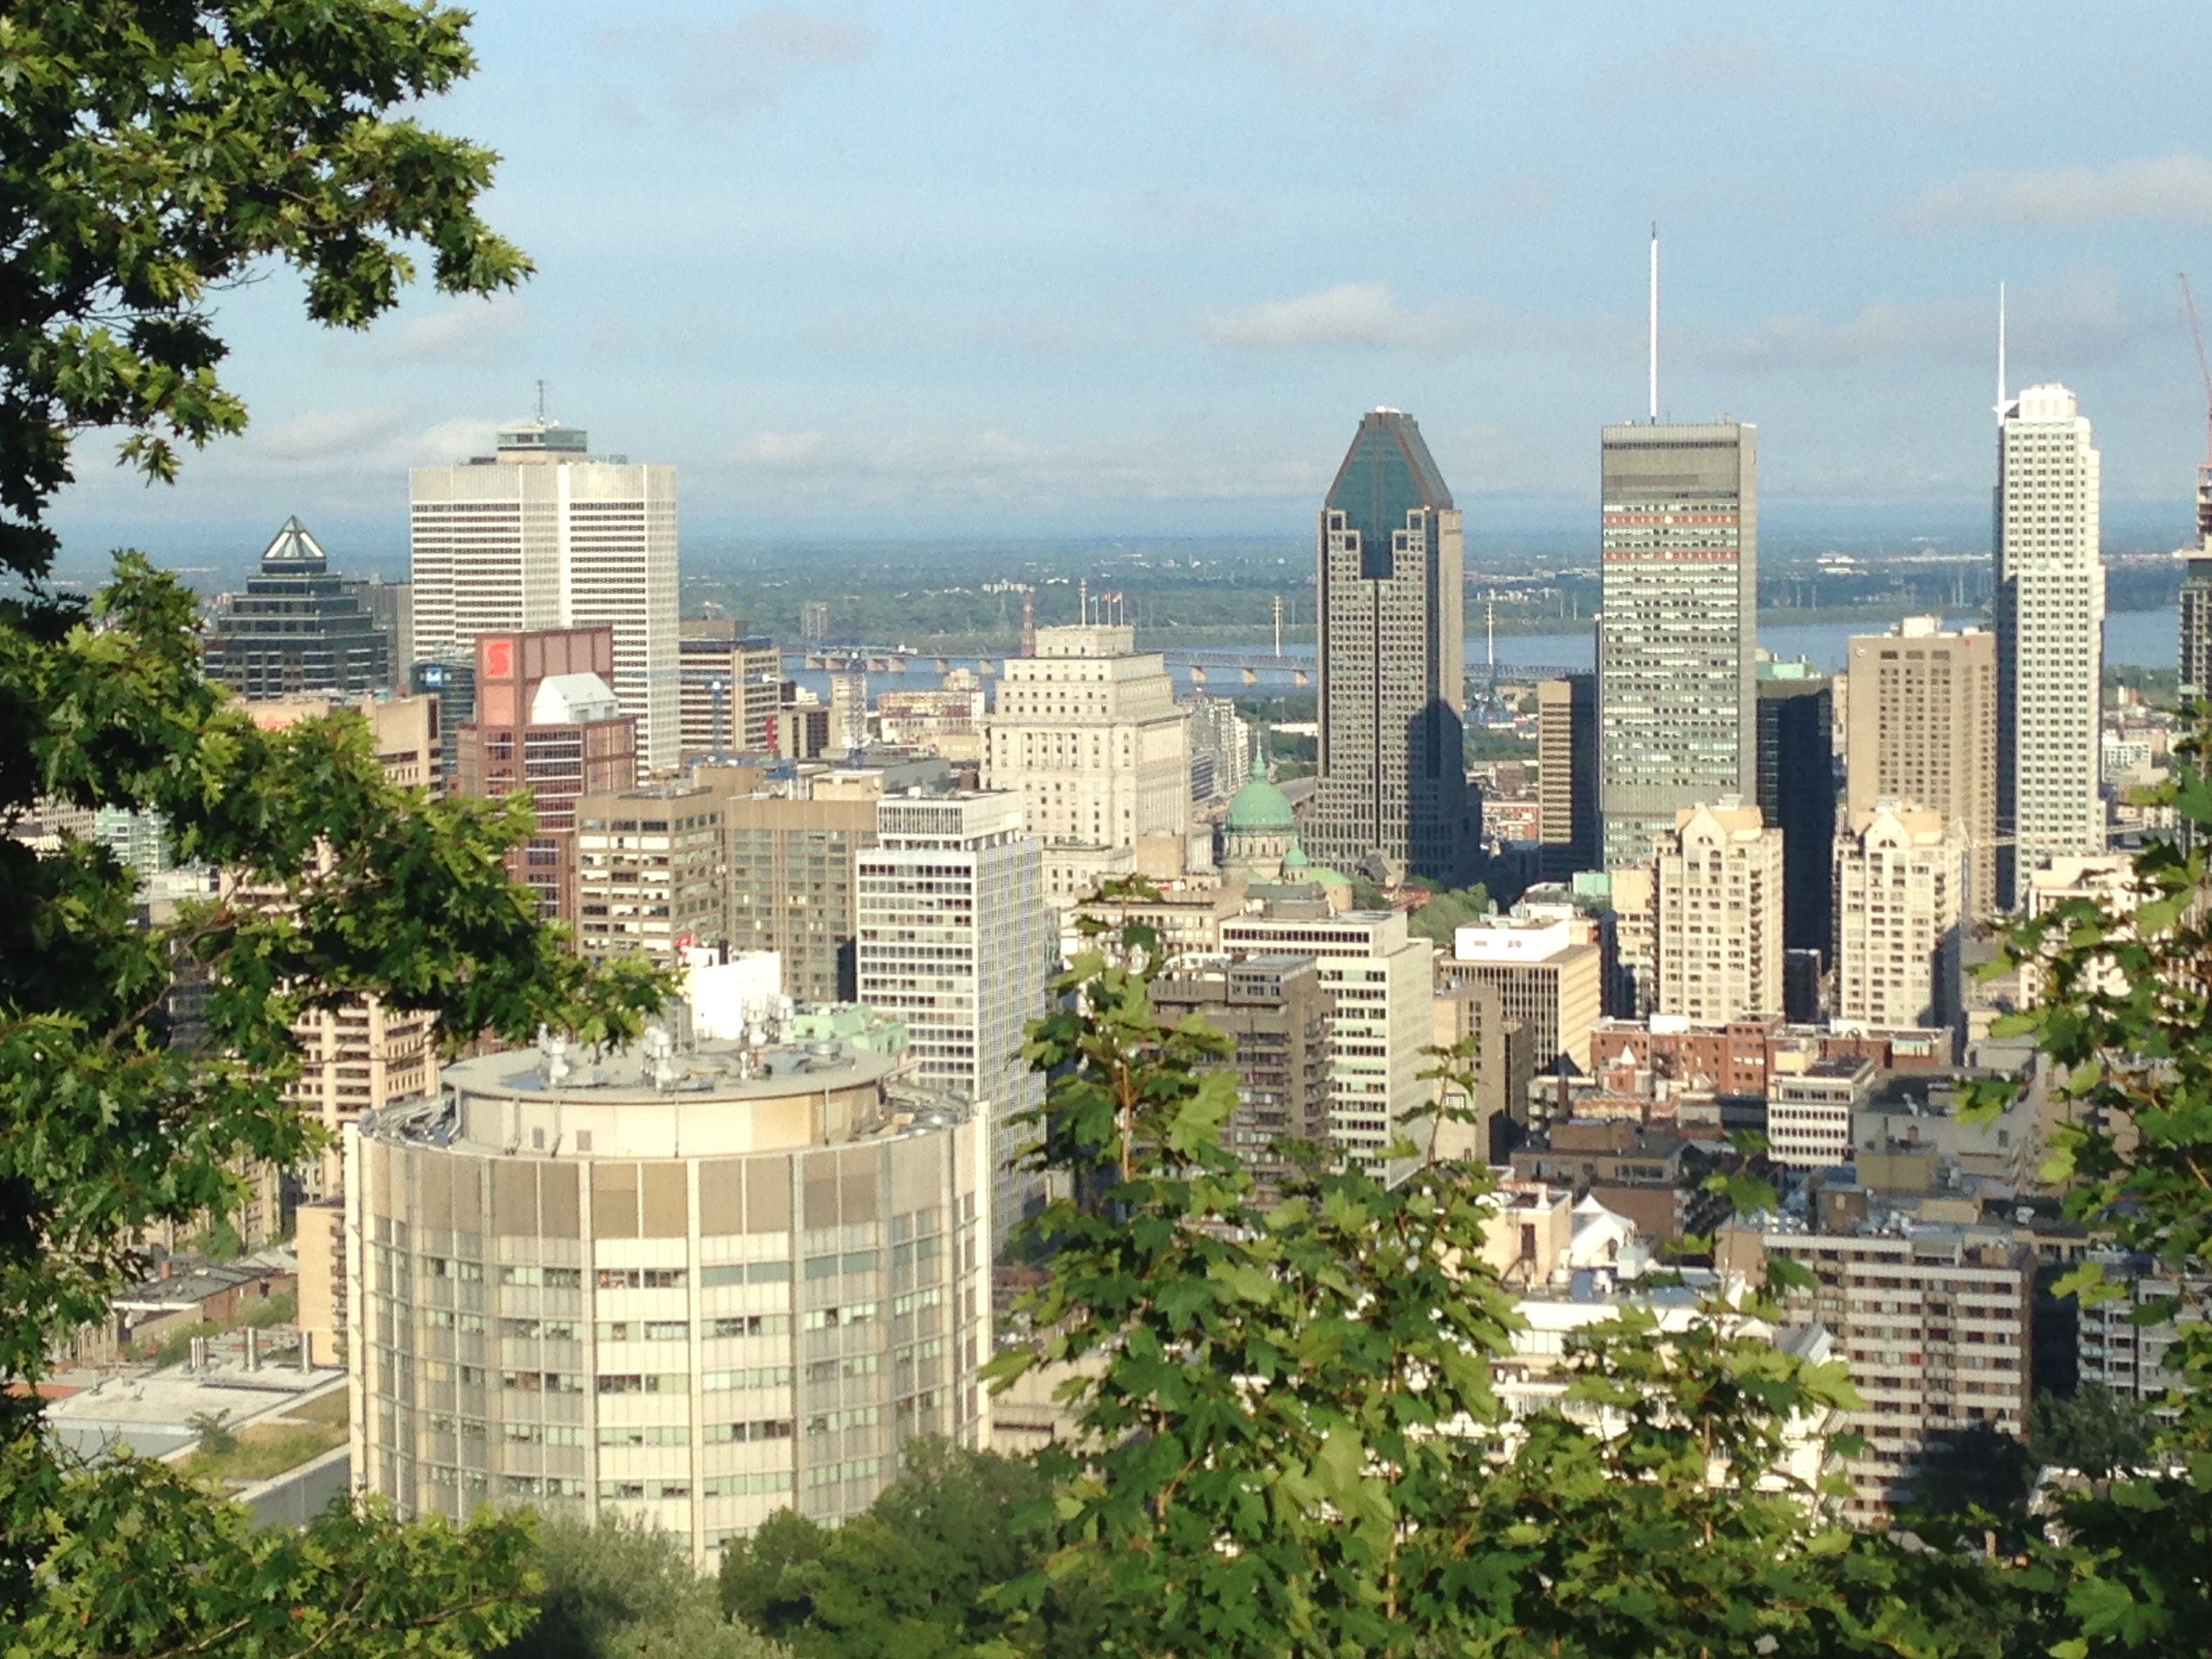 mont_royal_1.jpg